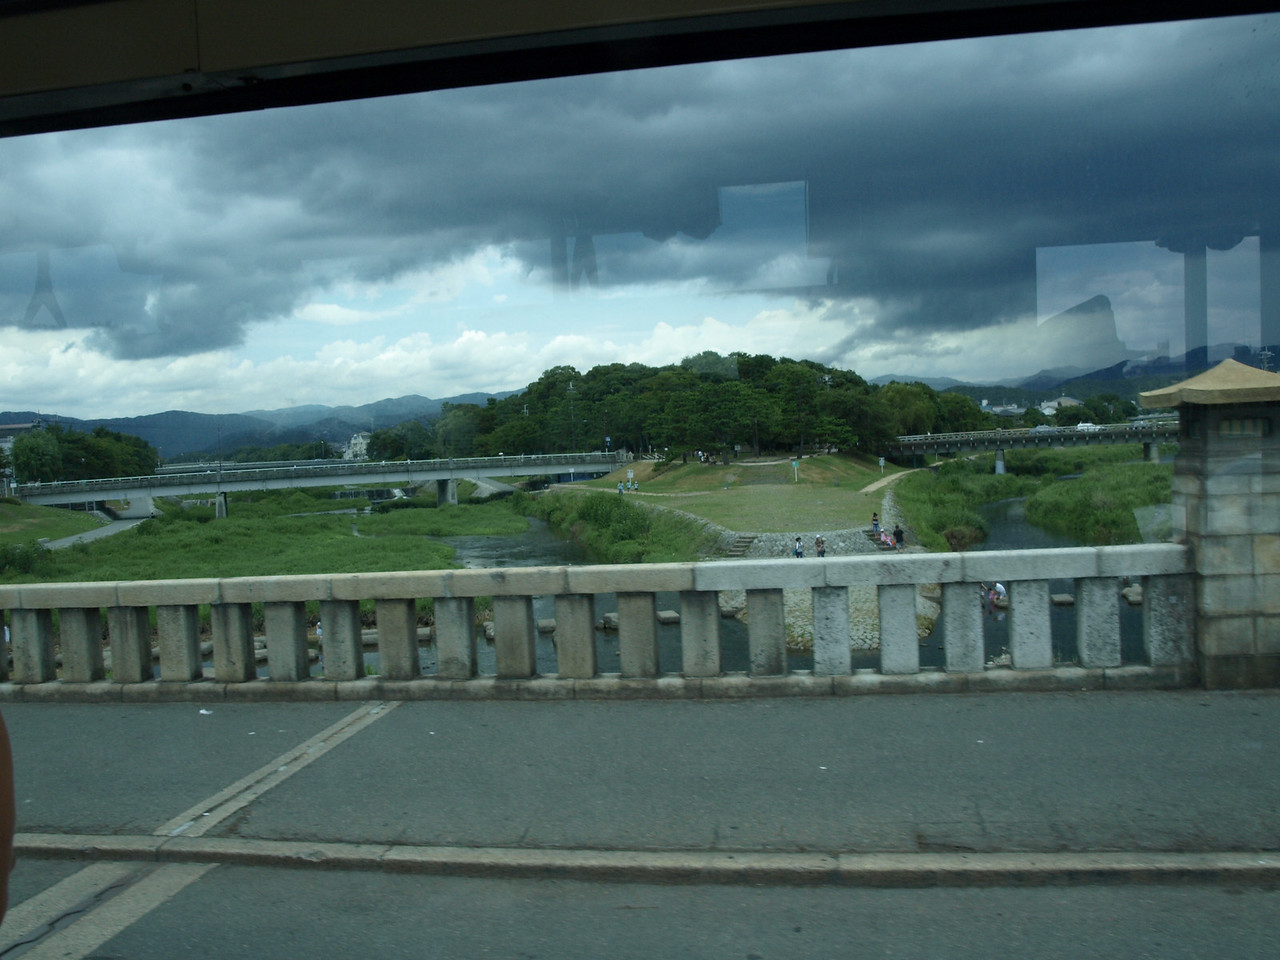 Looking north on the Kamo River. Note that the river splits in two here and, visible through the bridge rails, are large stepping stones that allow pedestrians to cross the river.